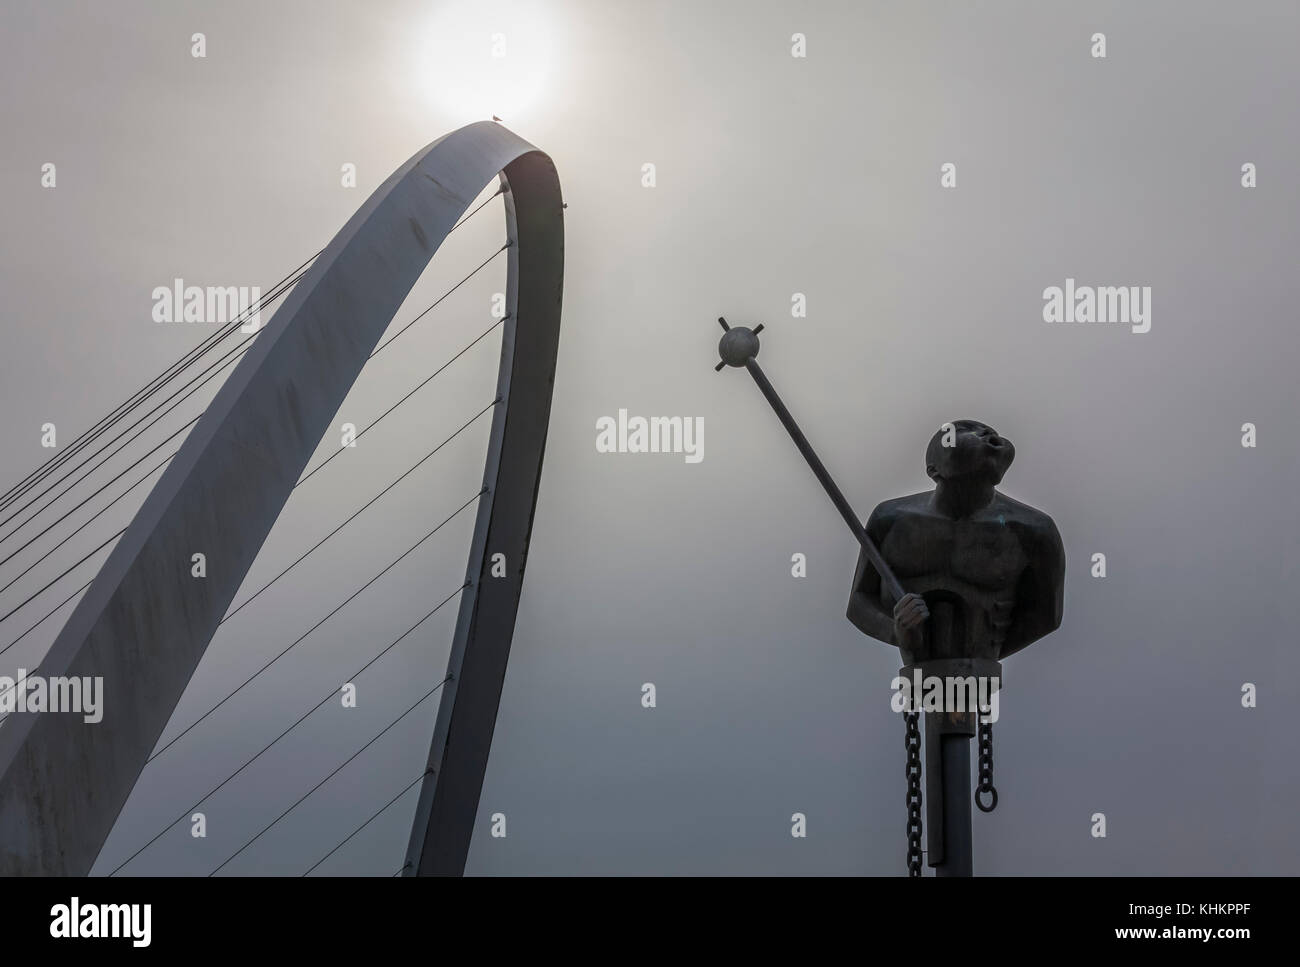 Panorama of River Tyne in Newcastle upon Tyne, Tyne and Wear in North East England including bridges and old factories - Stock Image